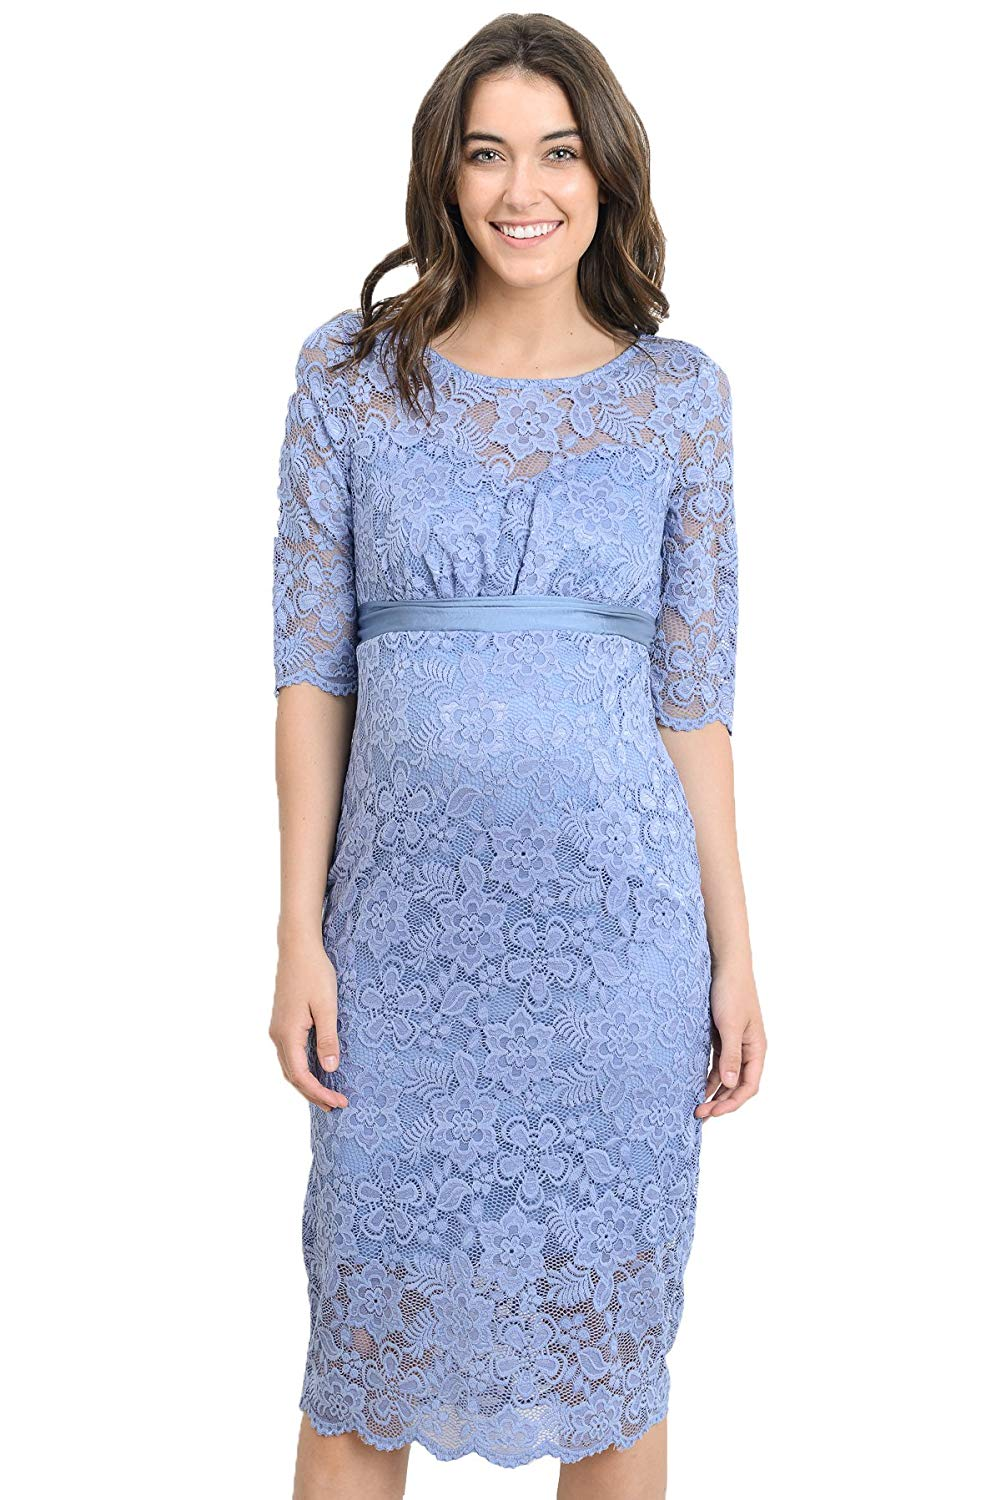 Blue Floral Lace Baby Shower Dress - Mommylicious